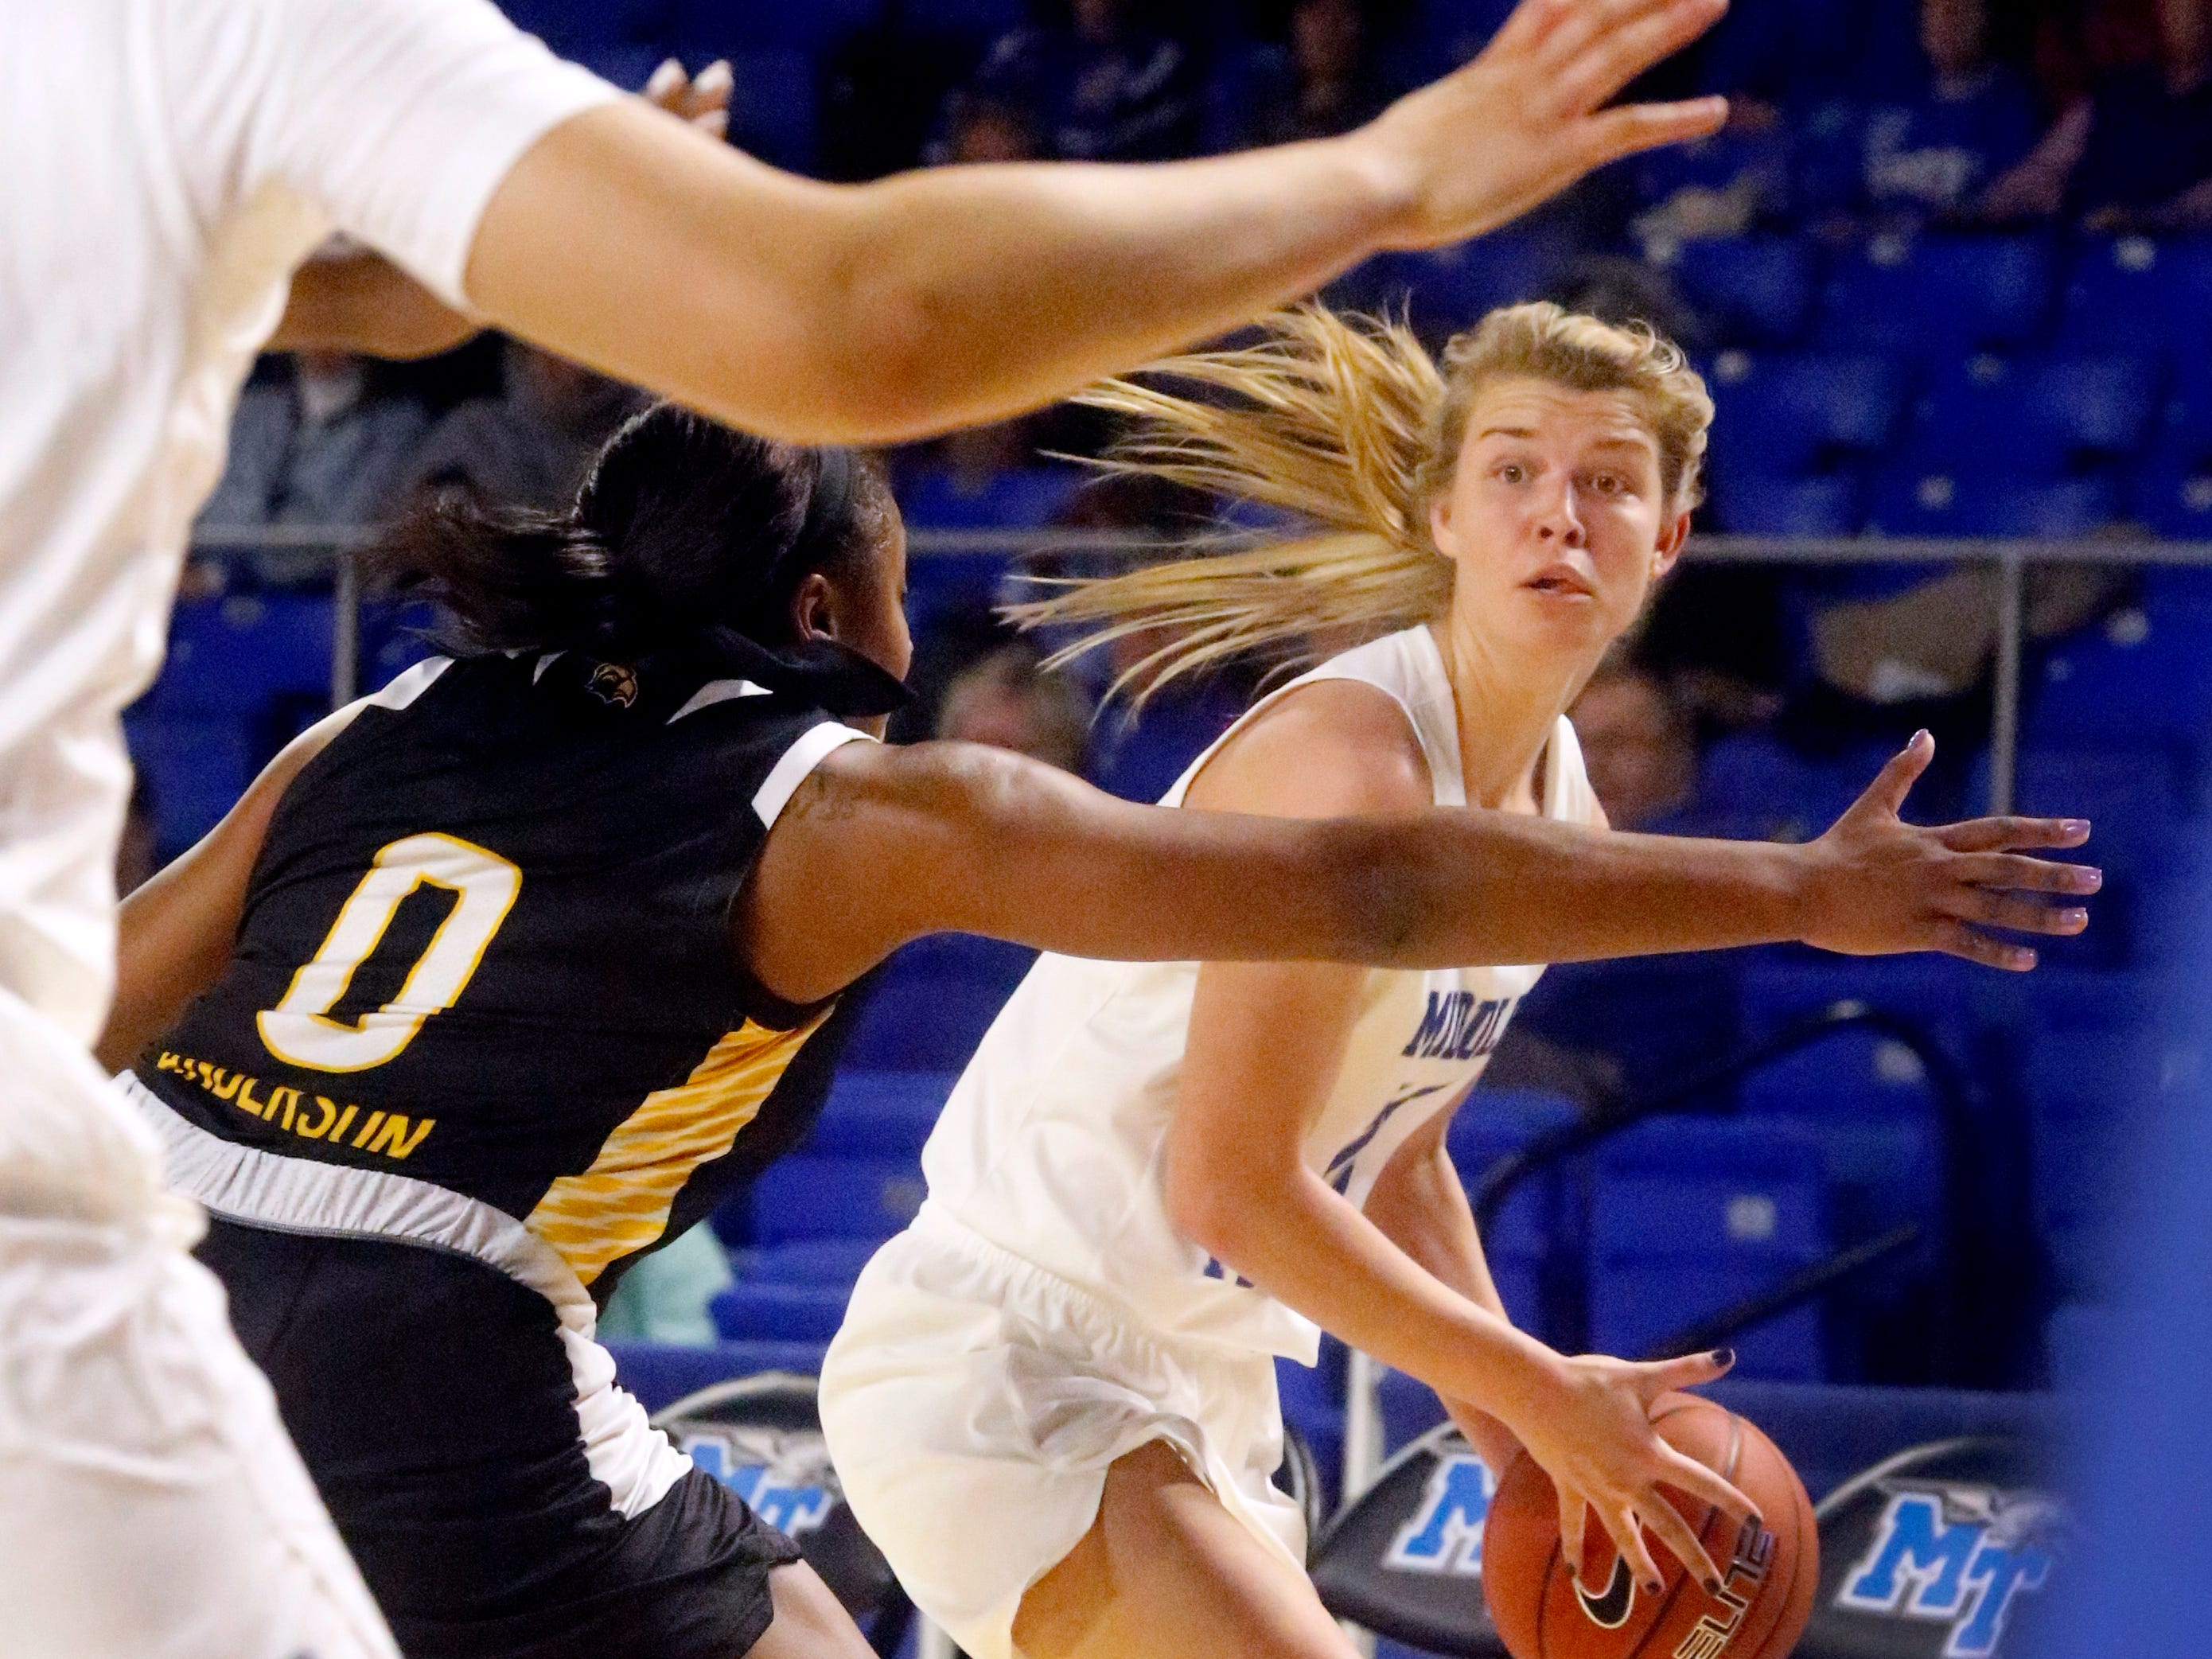 MTSU's guard Anna Jones (15) looks for a player to pass to as Southern Miss' Camille Anderson (0) guards her, on Thursday Jan. 10, 2019.